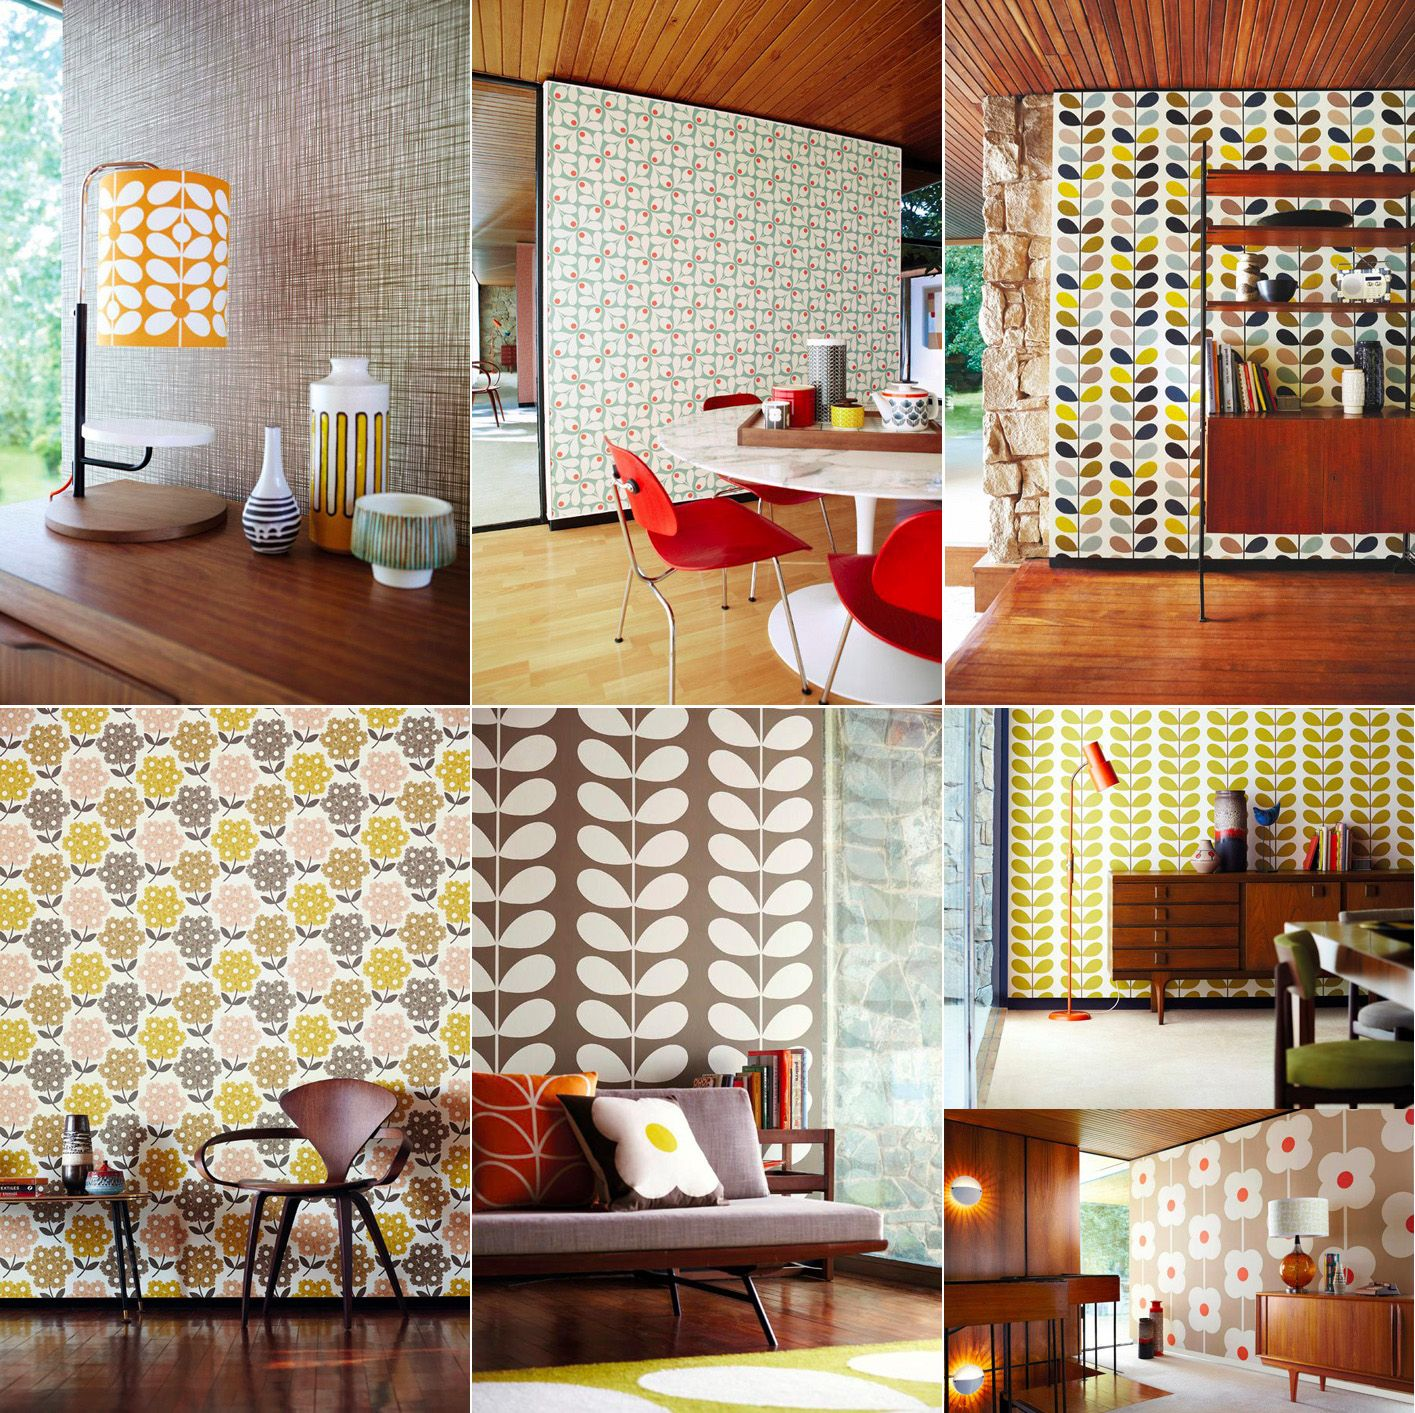 Bright hallway wallpaper  wallpaper from Orla Kiely Iull take the whole house  Home